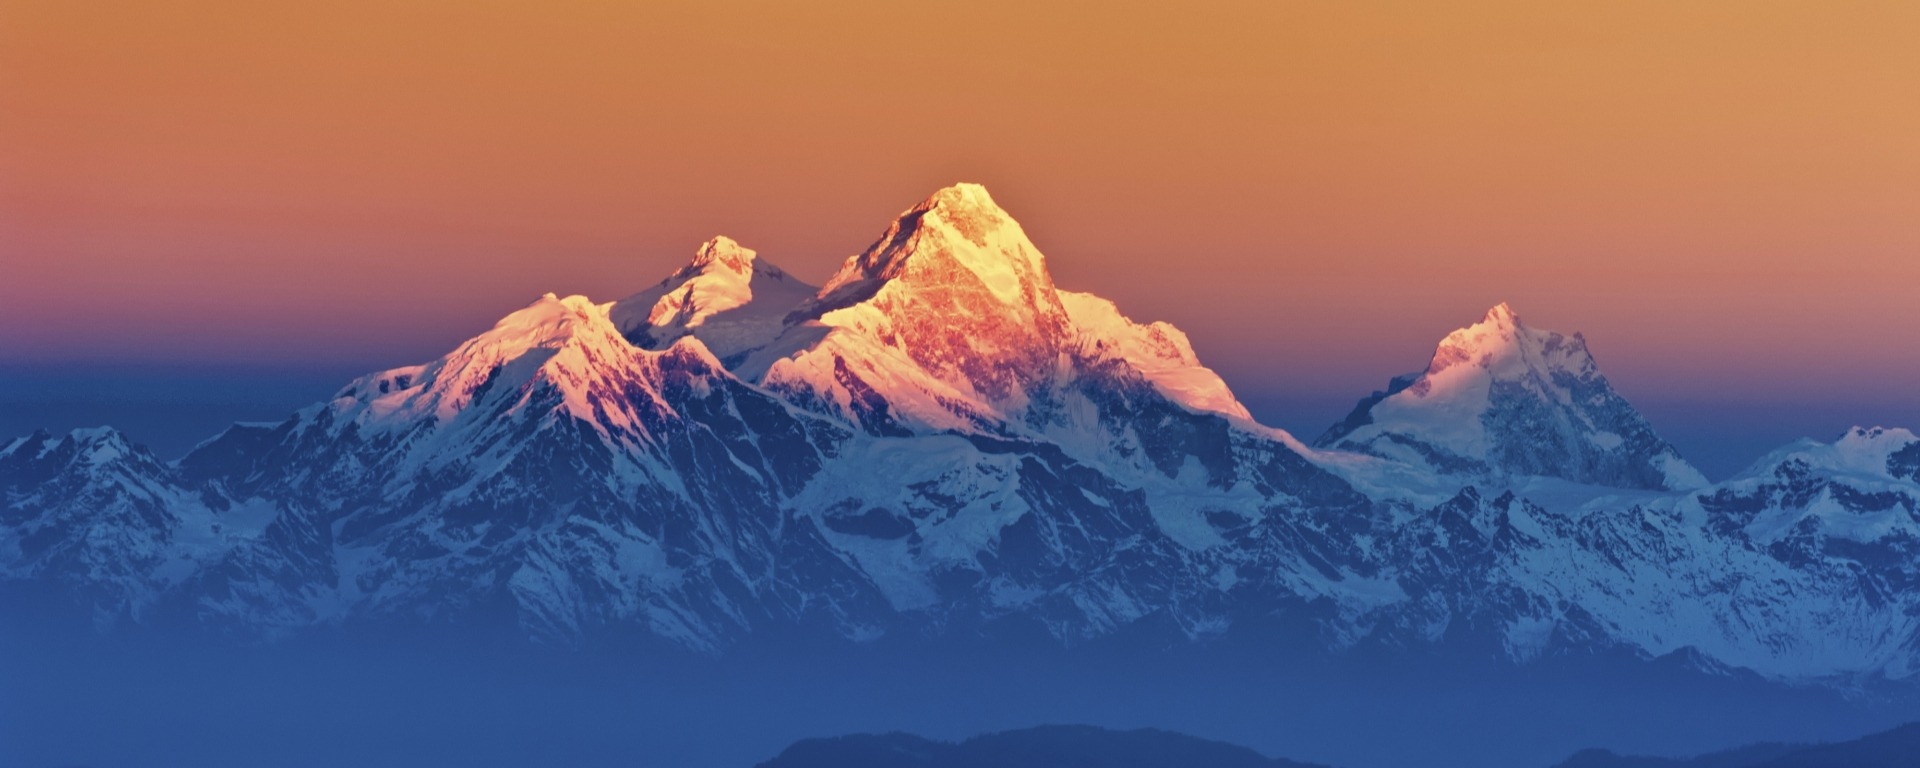 Himalayan-Mountains-View-from-Mt-Shivapuri